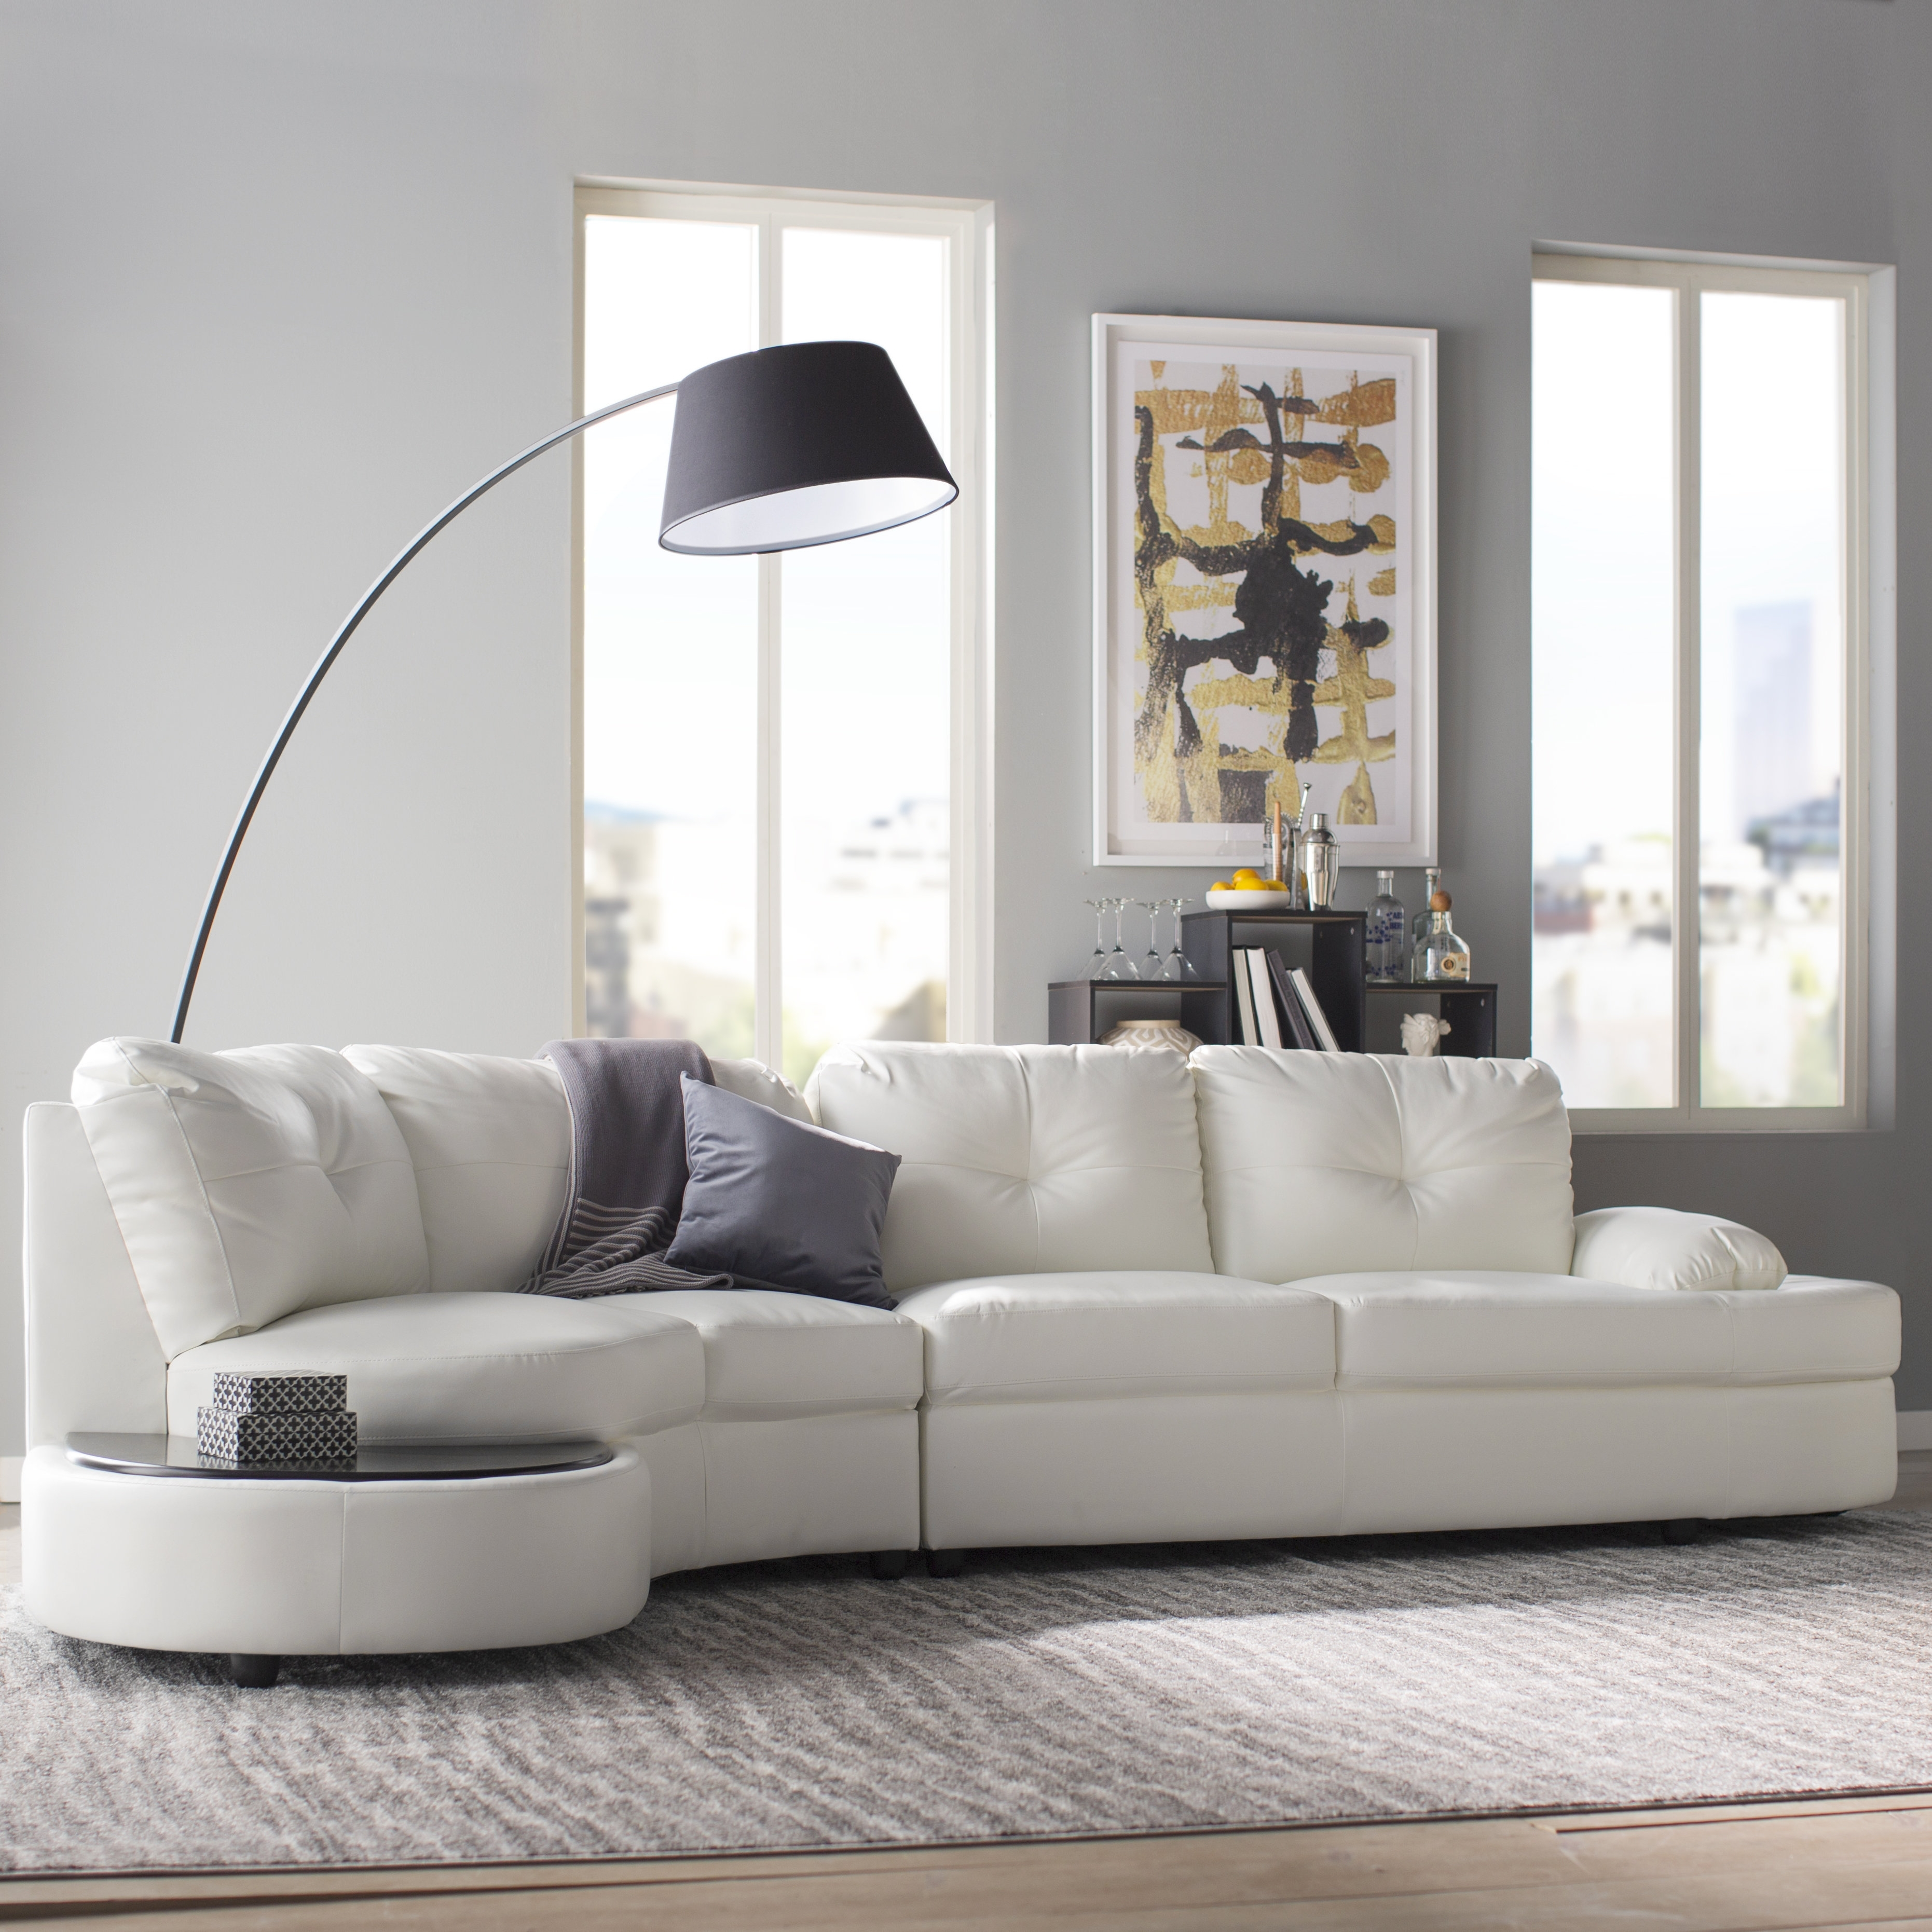 Wade Logan Bireuen Sectional & Reviews | Wayfair Throughout Declan 3 Piece Power Reclining Sectionals With Right Facing Console Loveseat (Image 25 of 25)